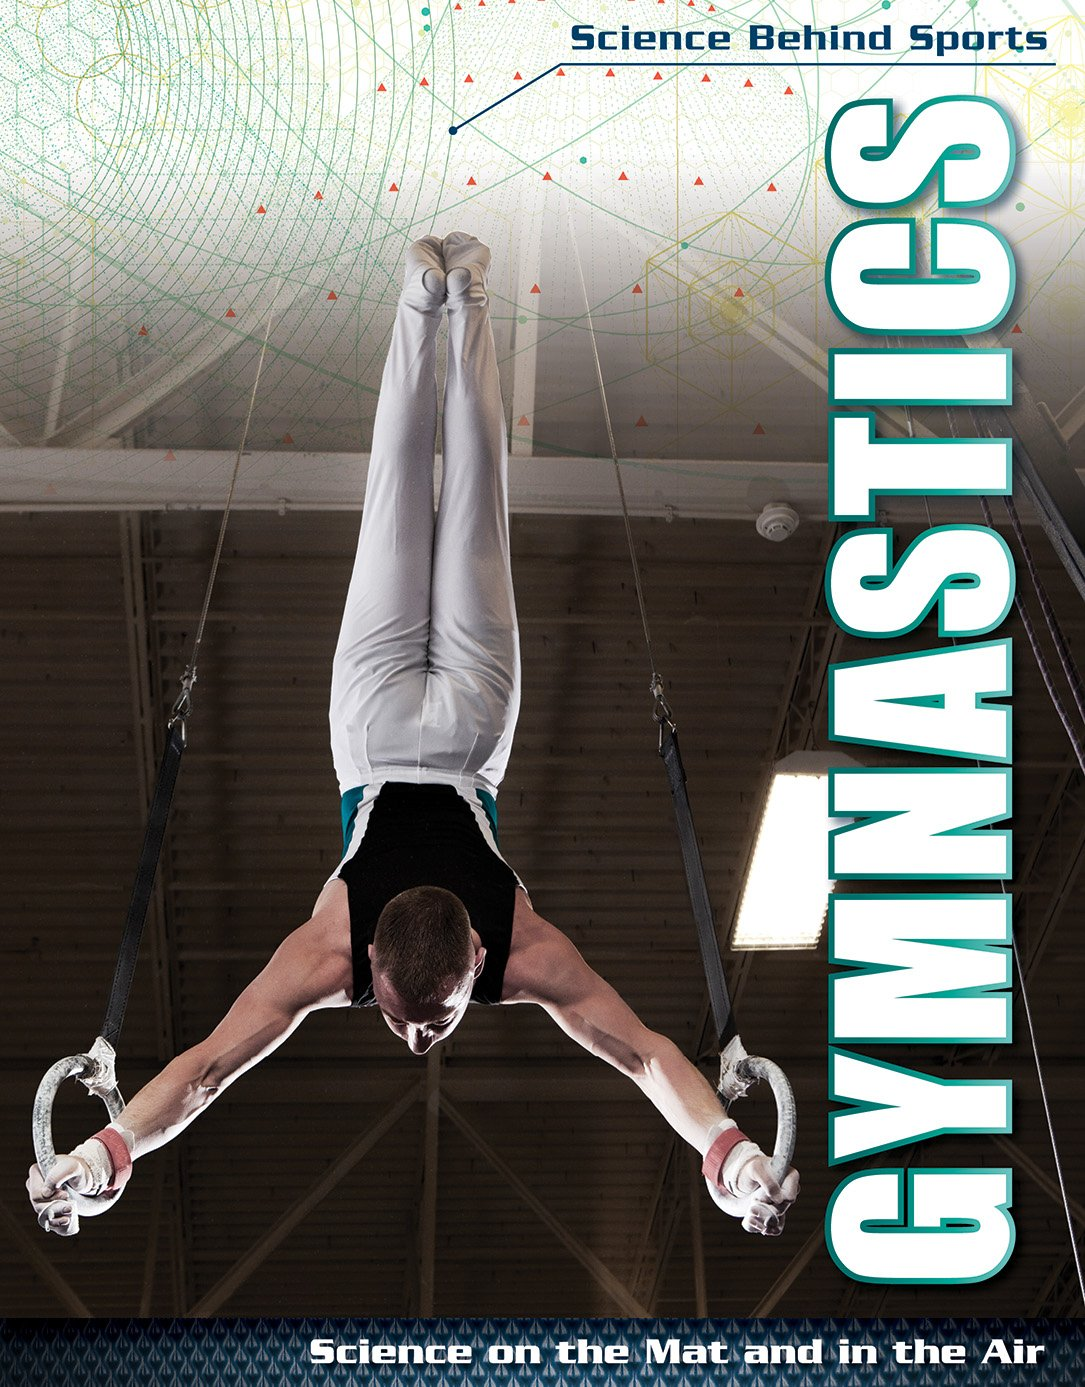 Gymnastics: Science on the Mat and in the Air (Science Behind Sports)